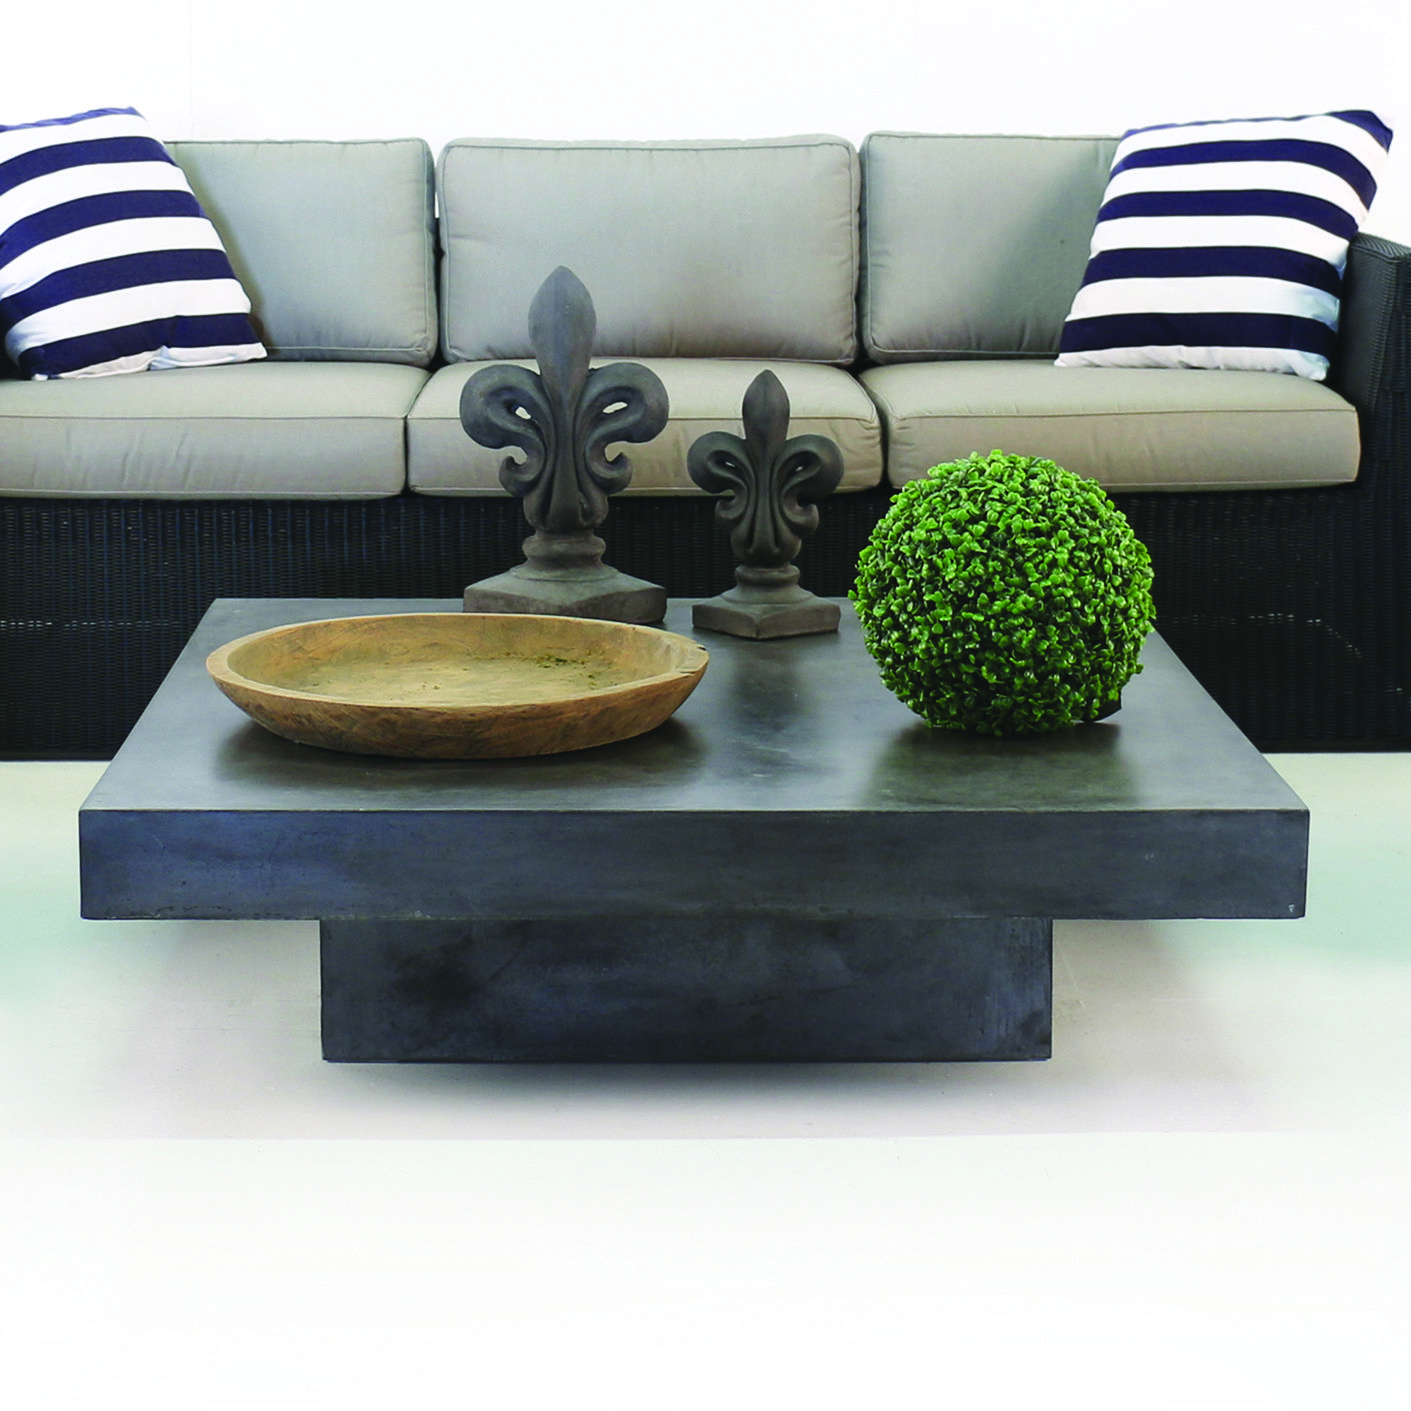 accessorize with a raw concrete coffee table the low profile of